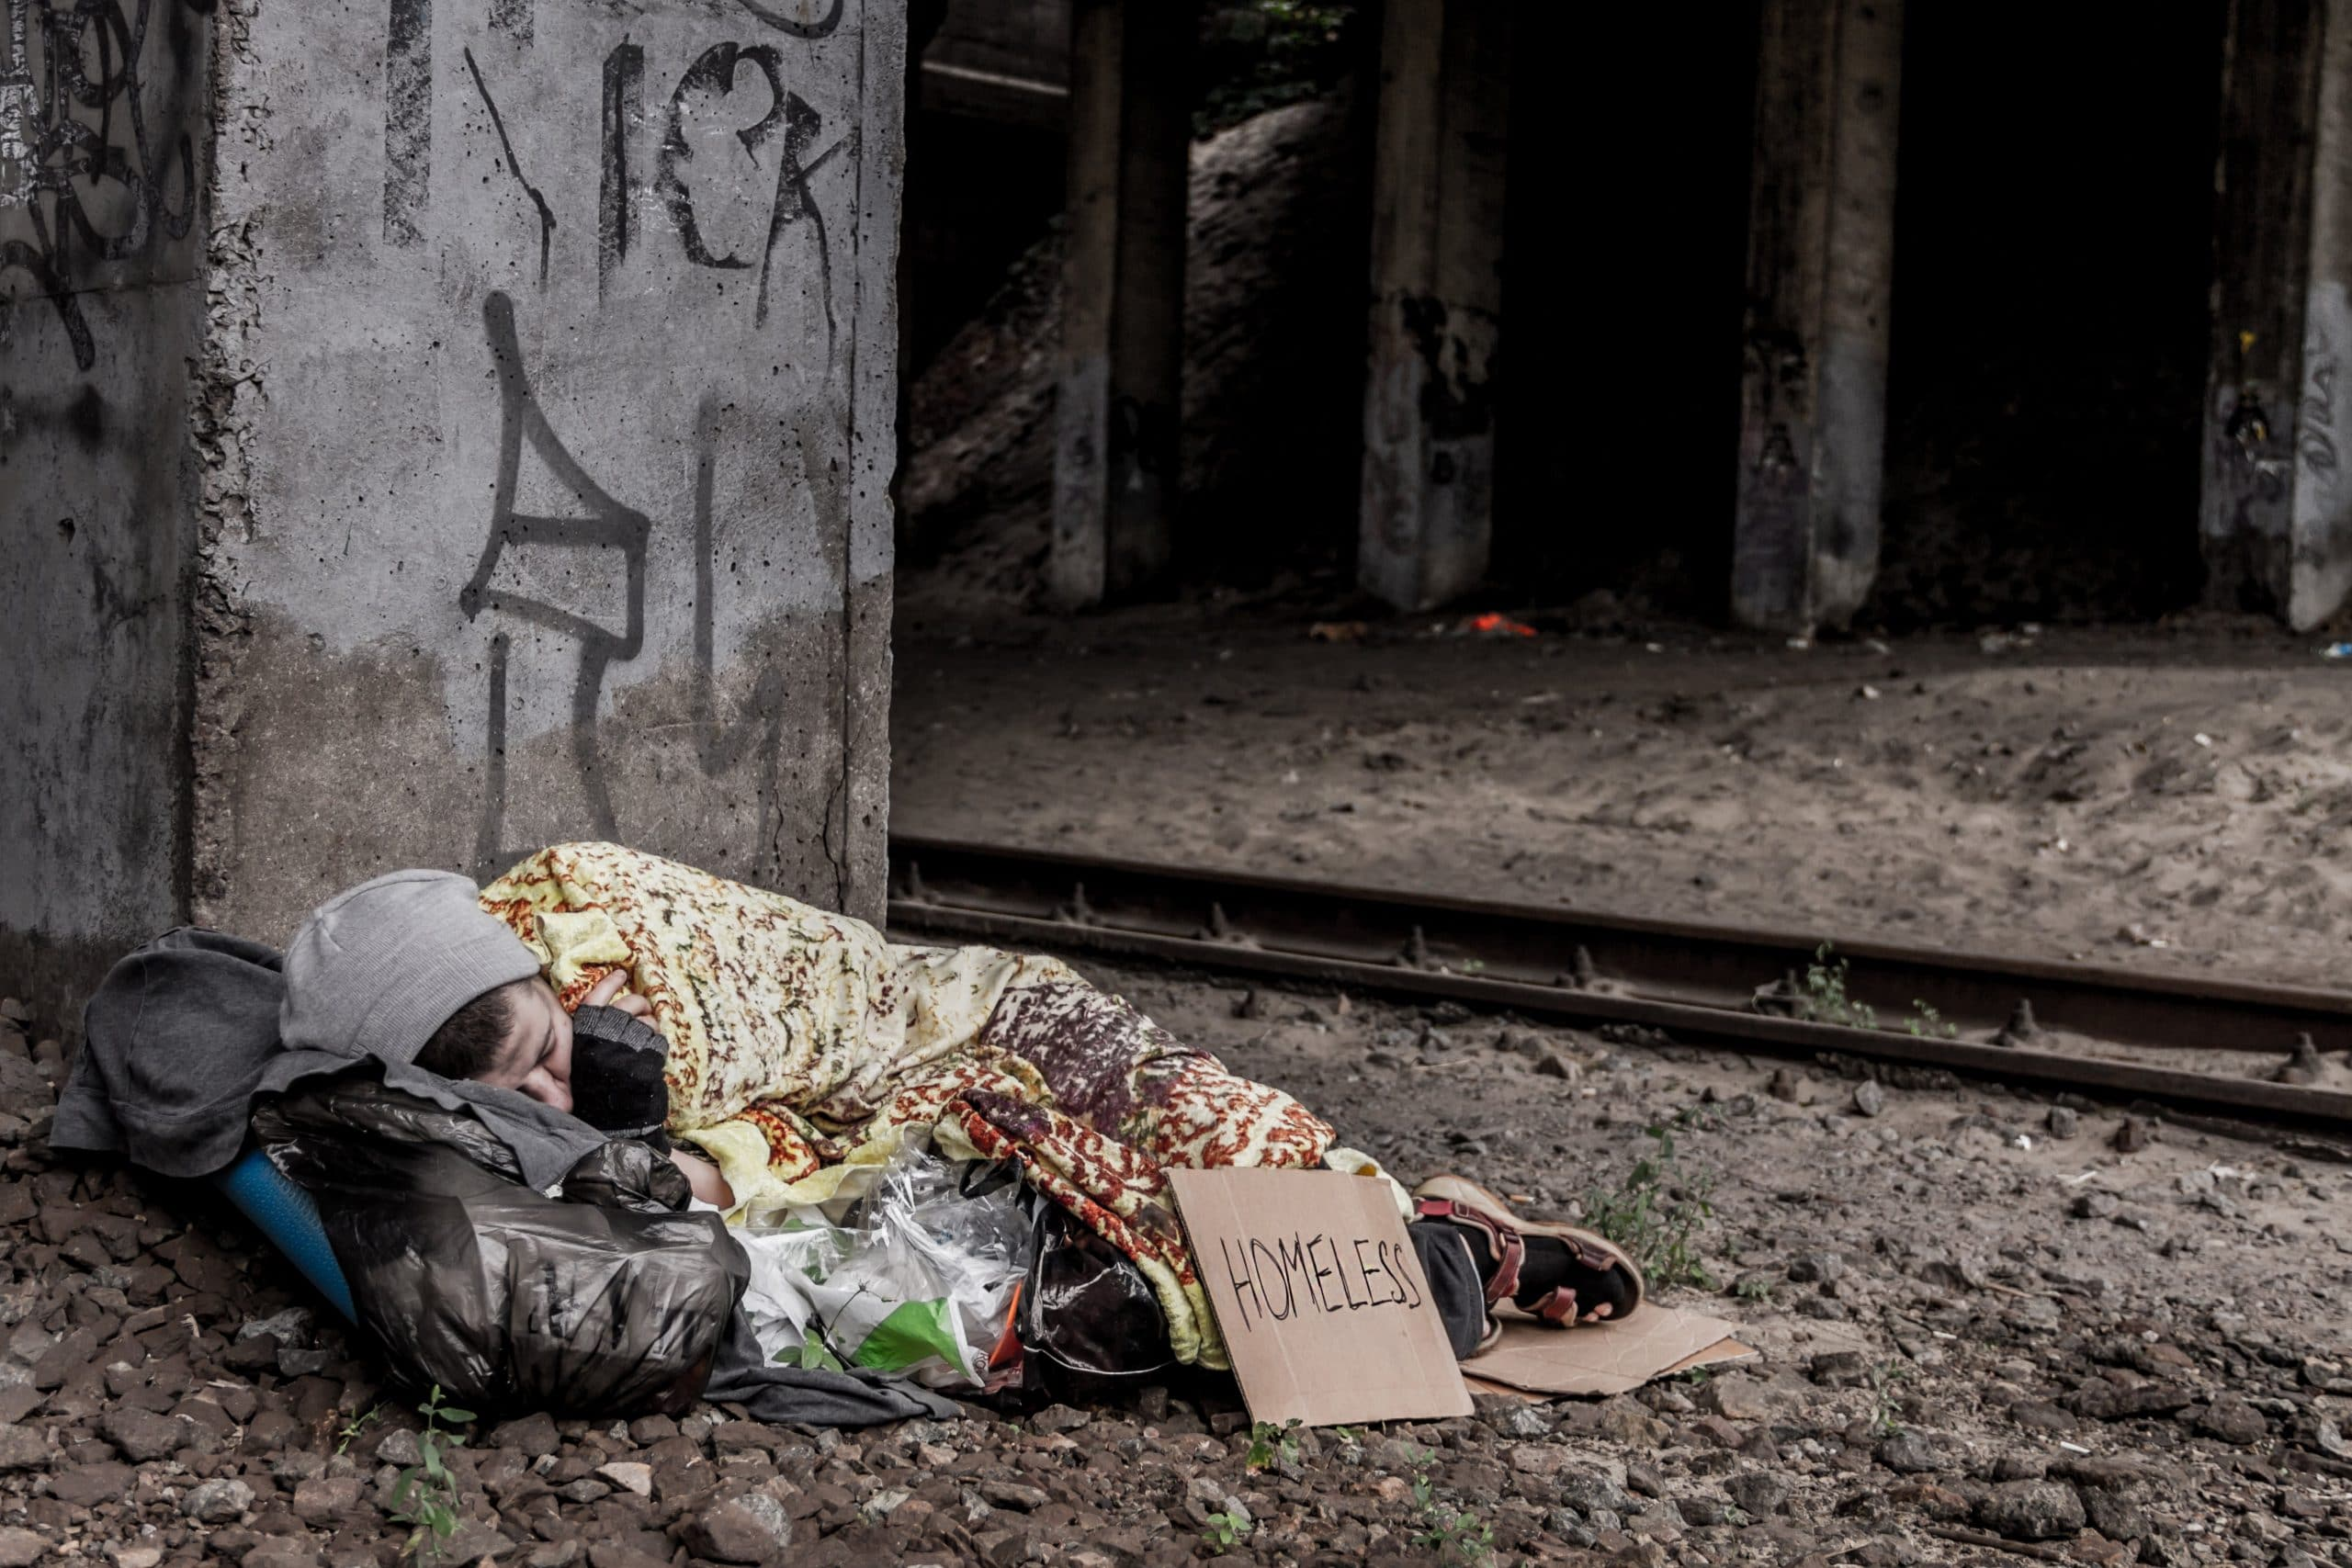 A homeless person sleeping outdoors